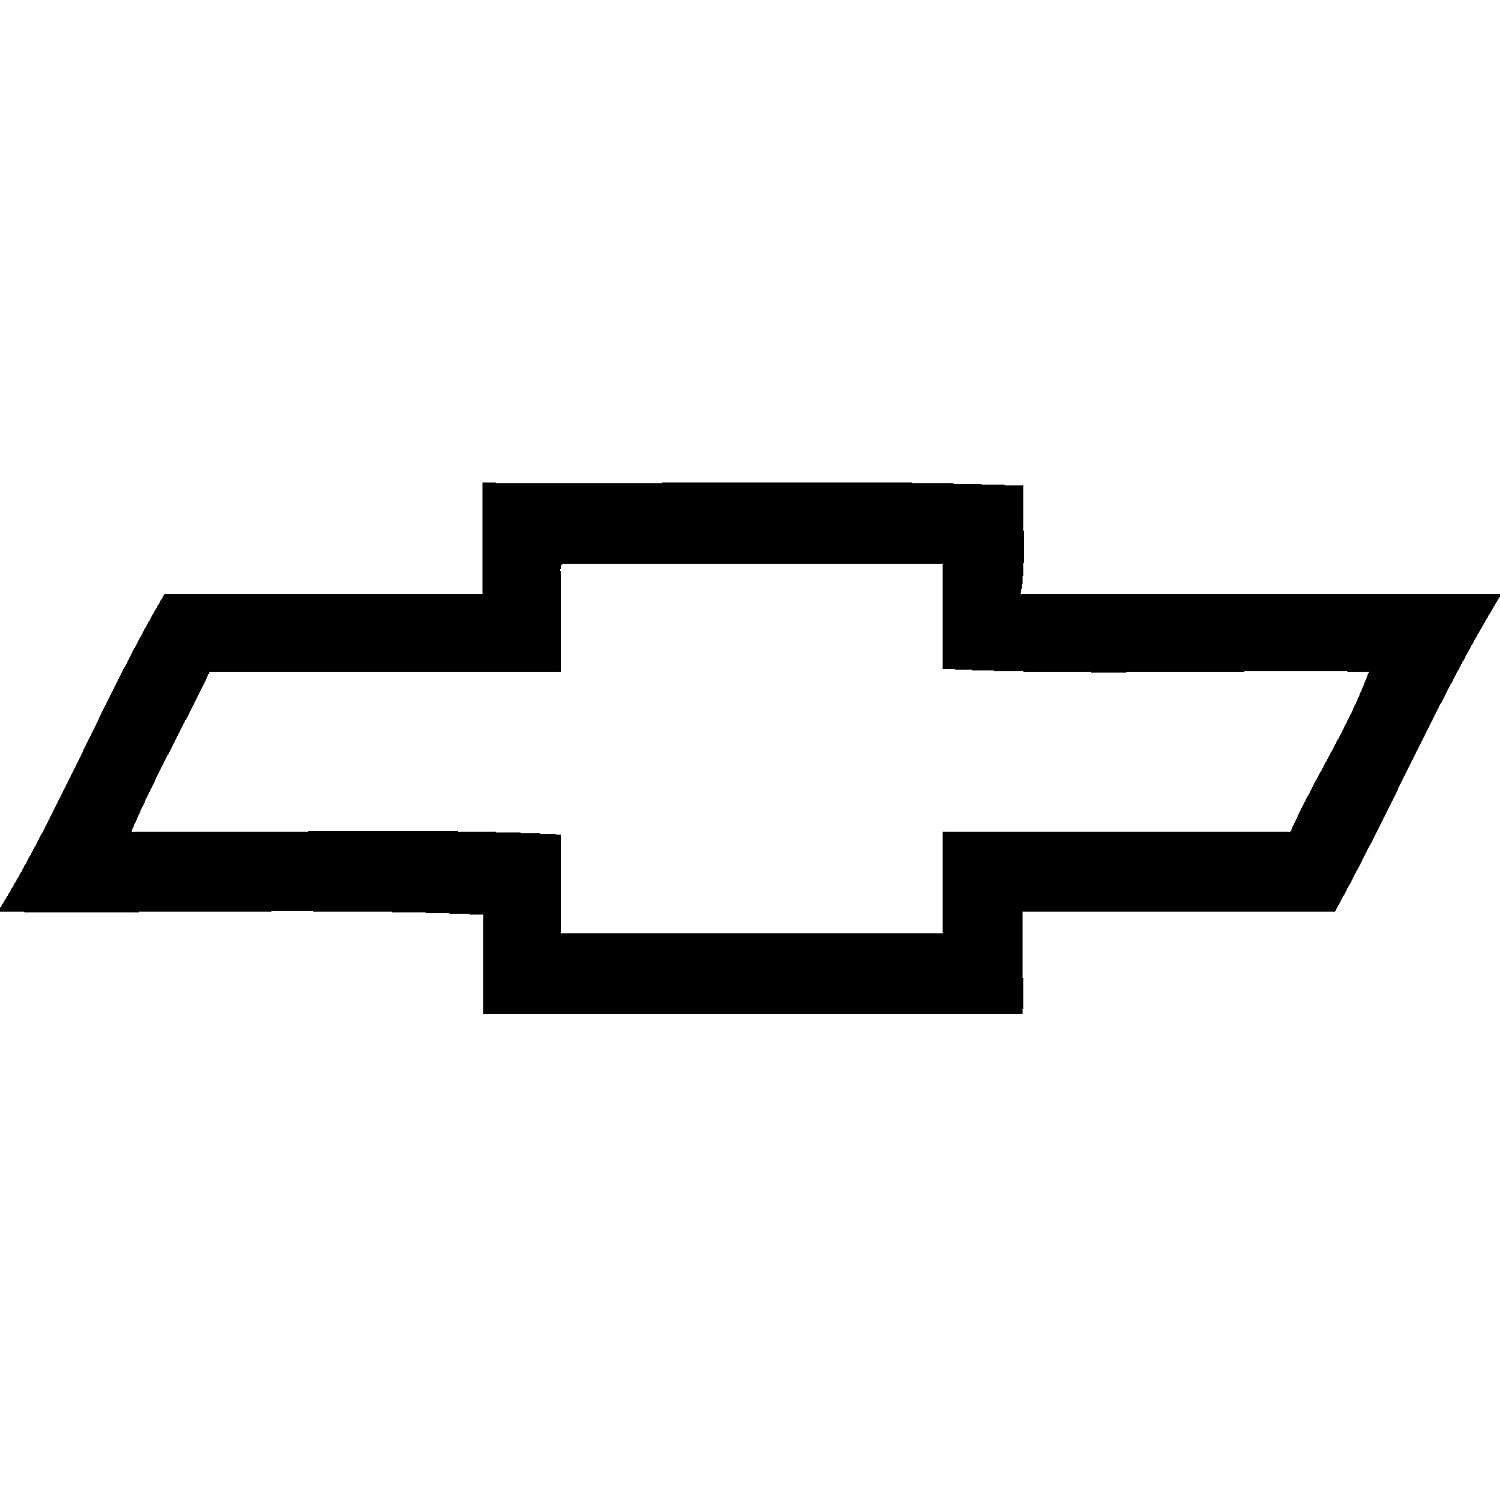 Amazoncom Chevy Bowtie Vinyl Decal Sticker For Car Or Truck